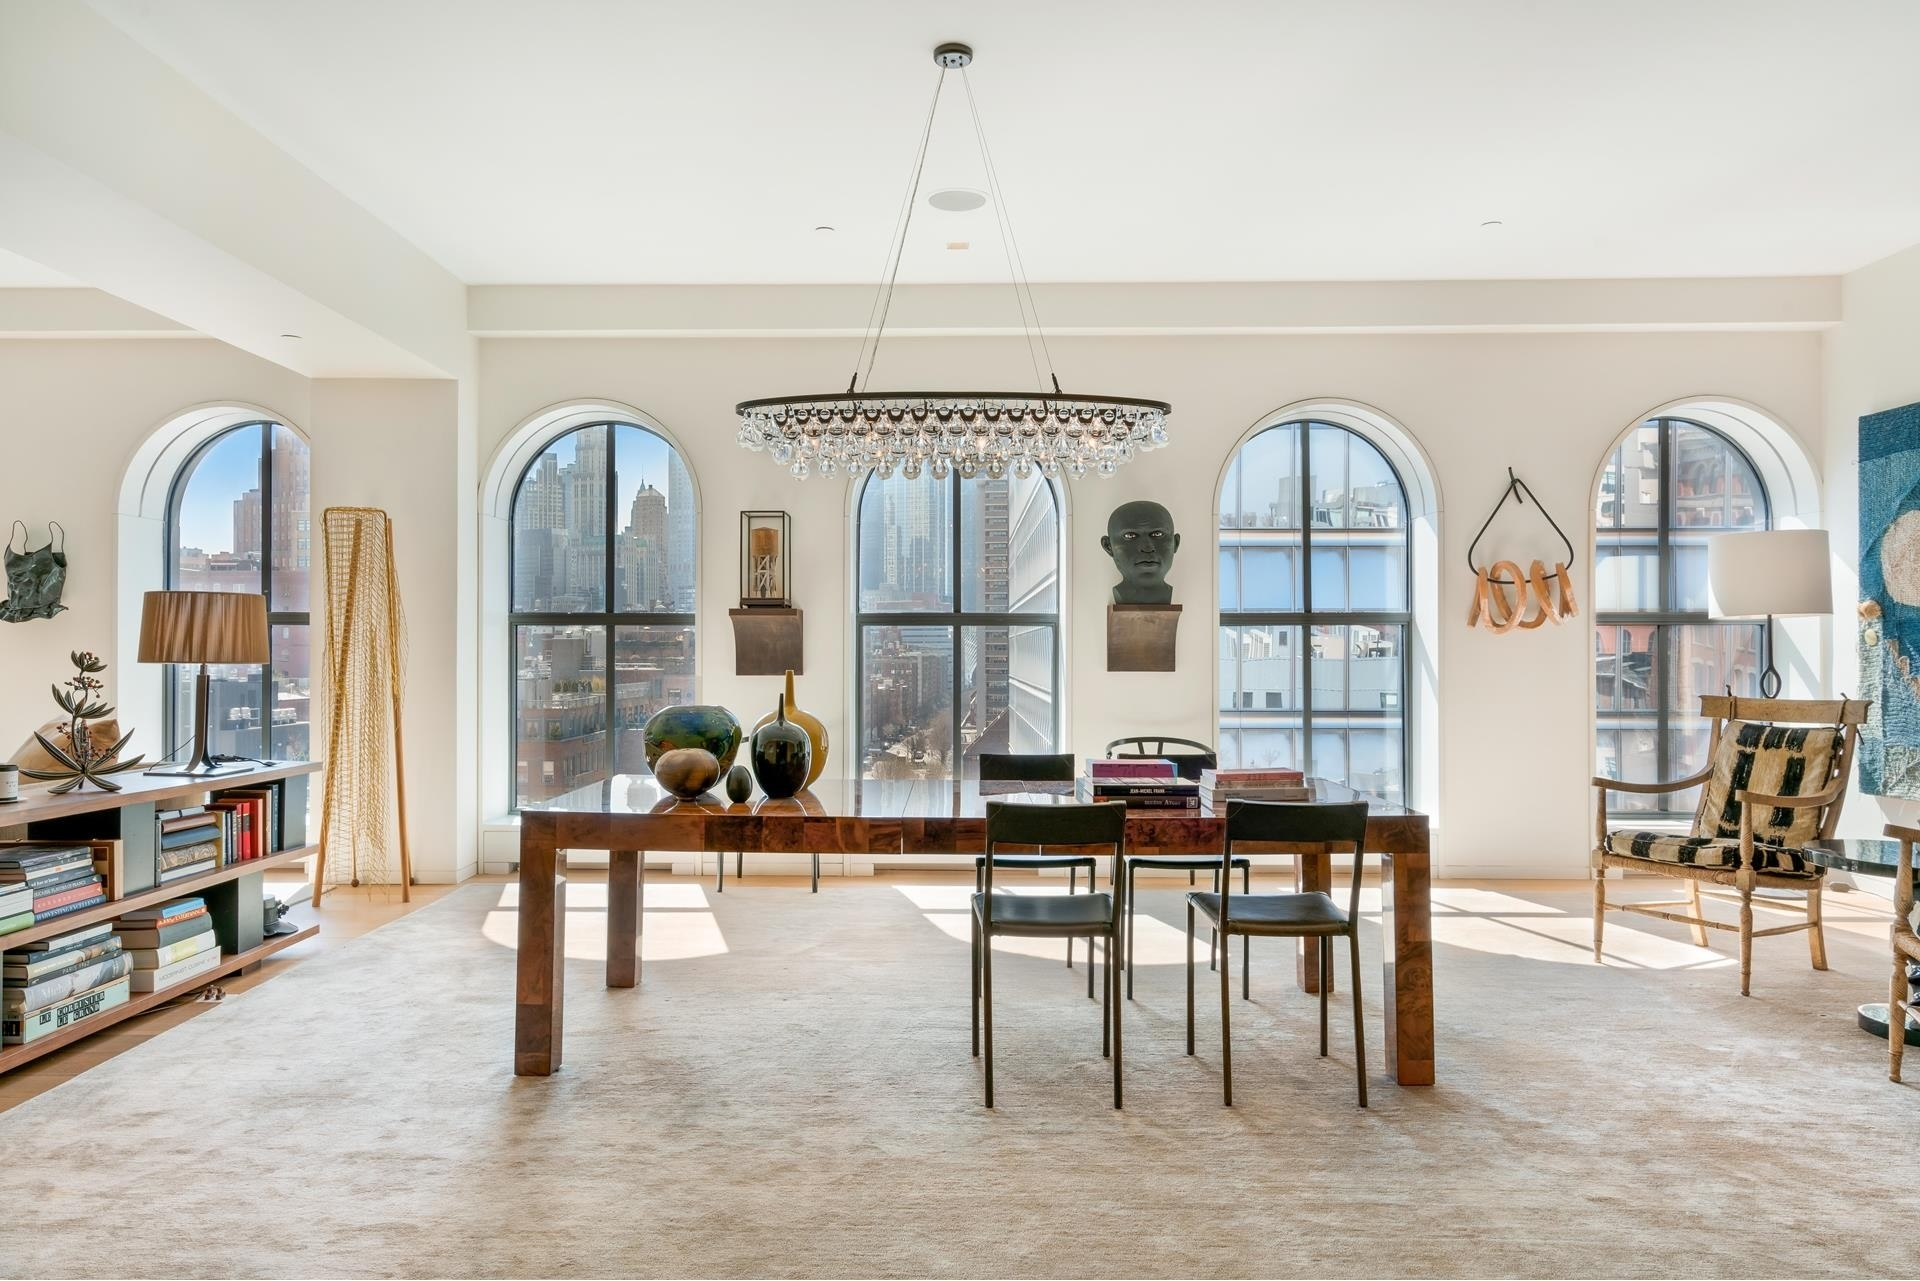 8. Condominiums for Sale at 408 GREENWICH ST , PH TriBeCa, New York, NY 10013